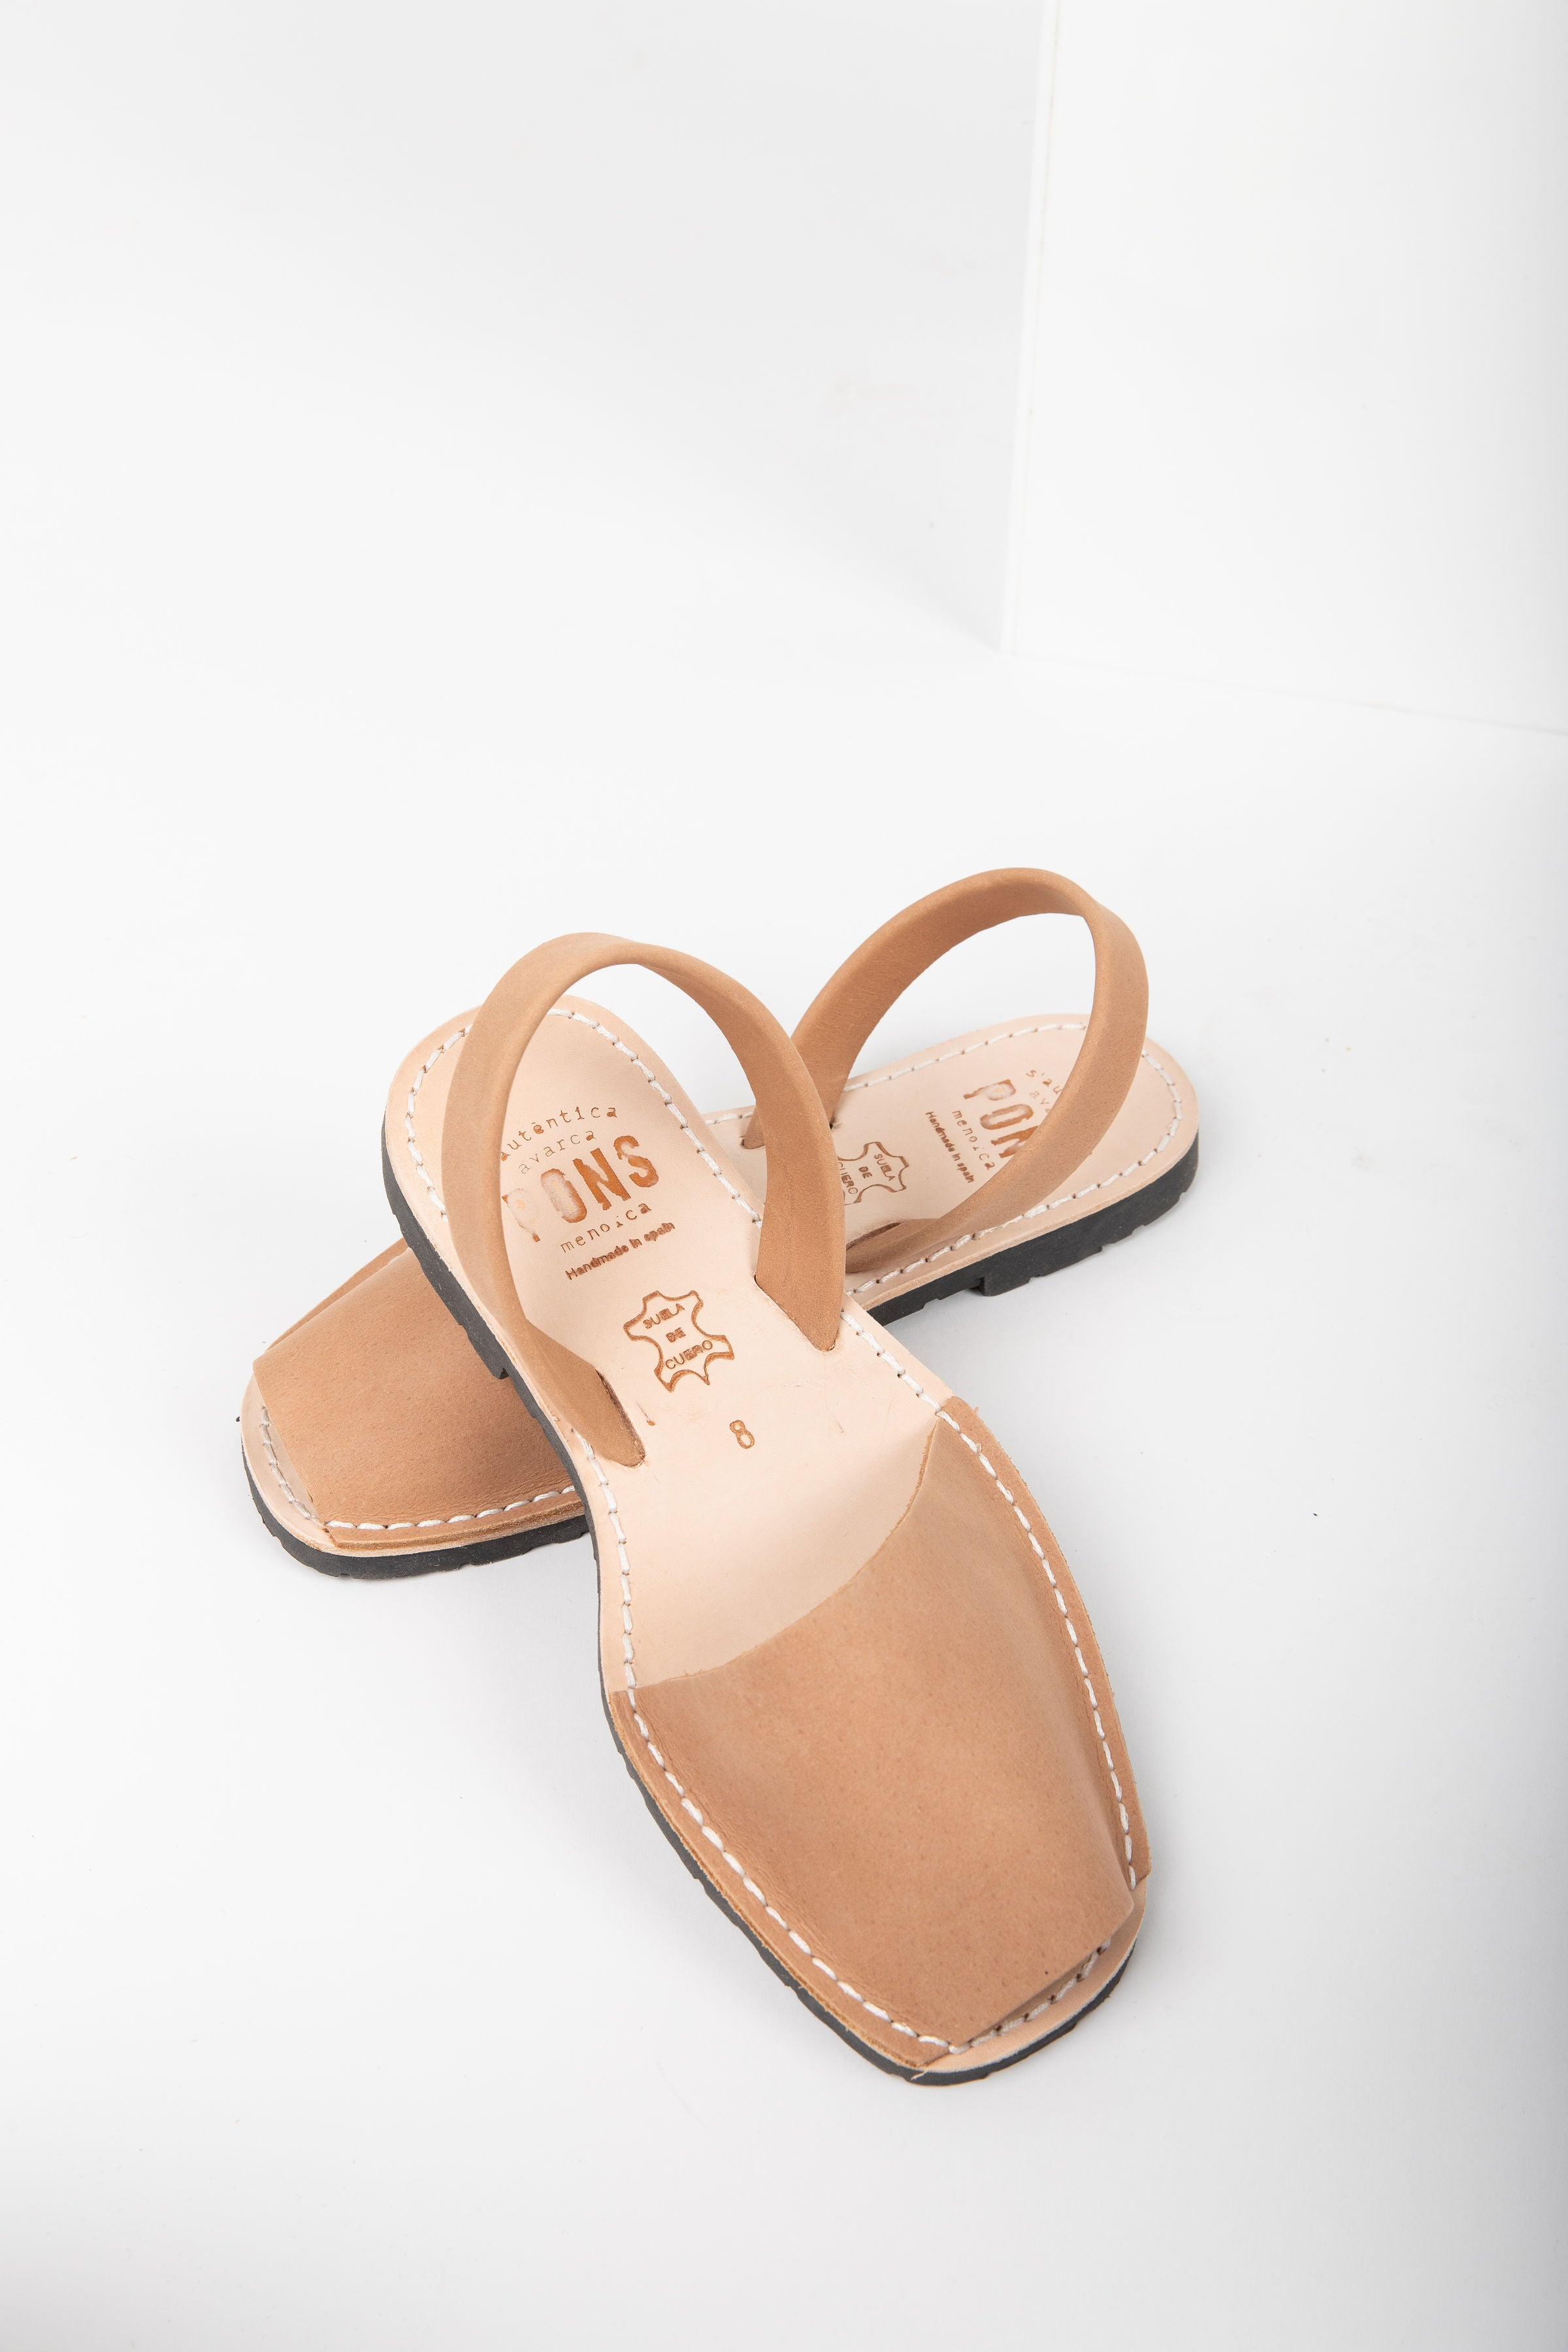 PONS: Classic Style in Tan